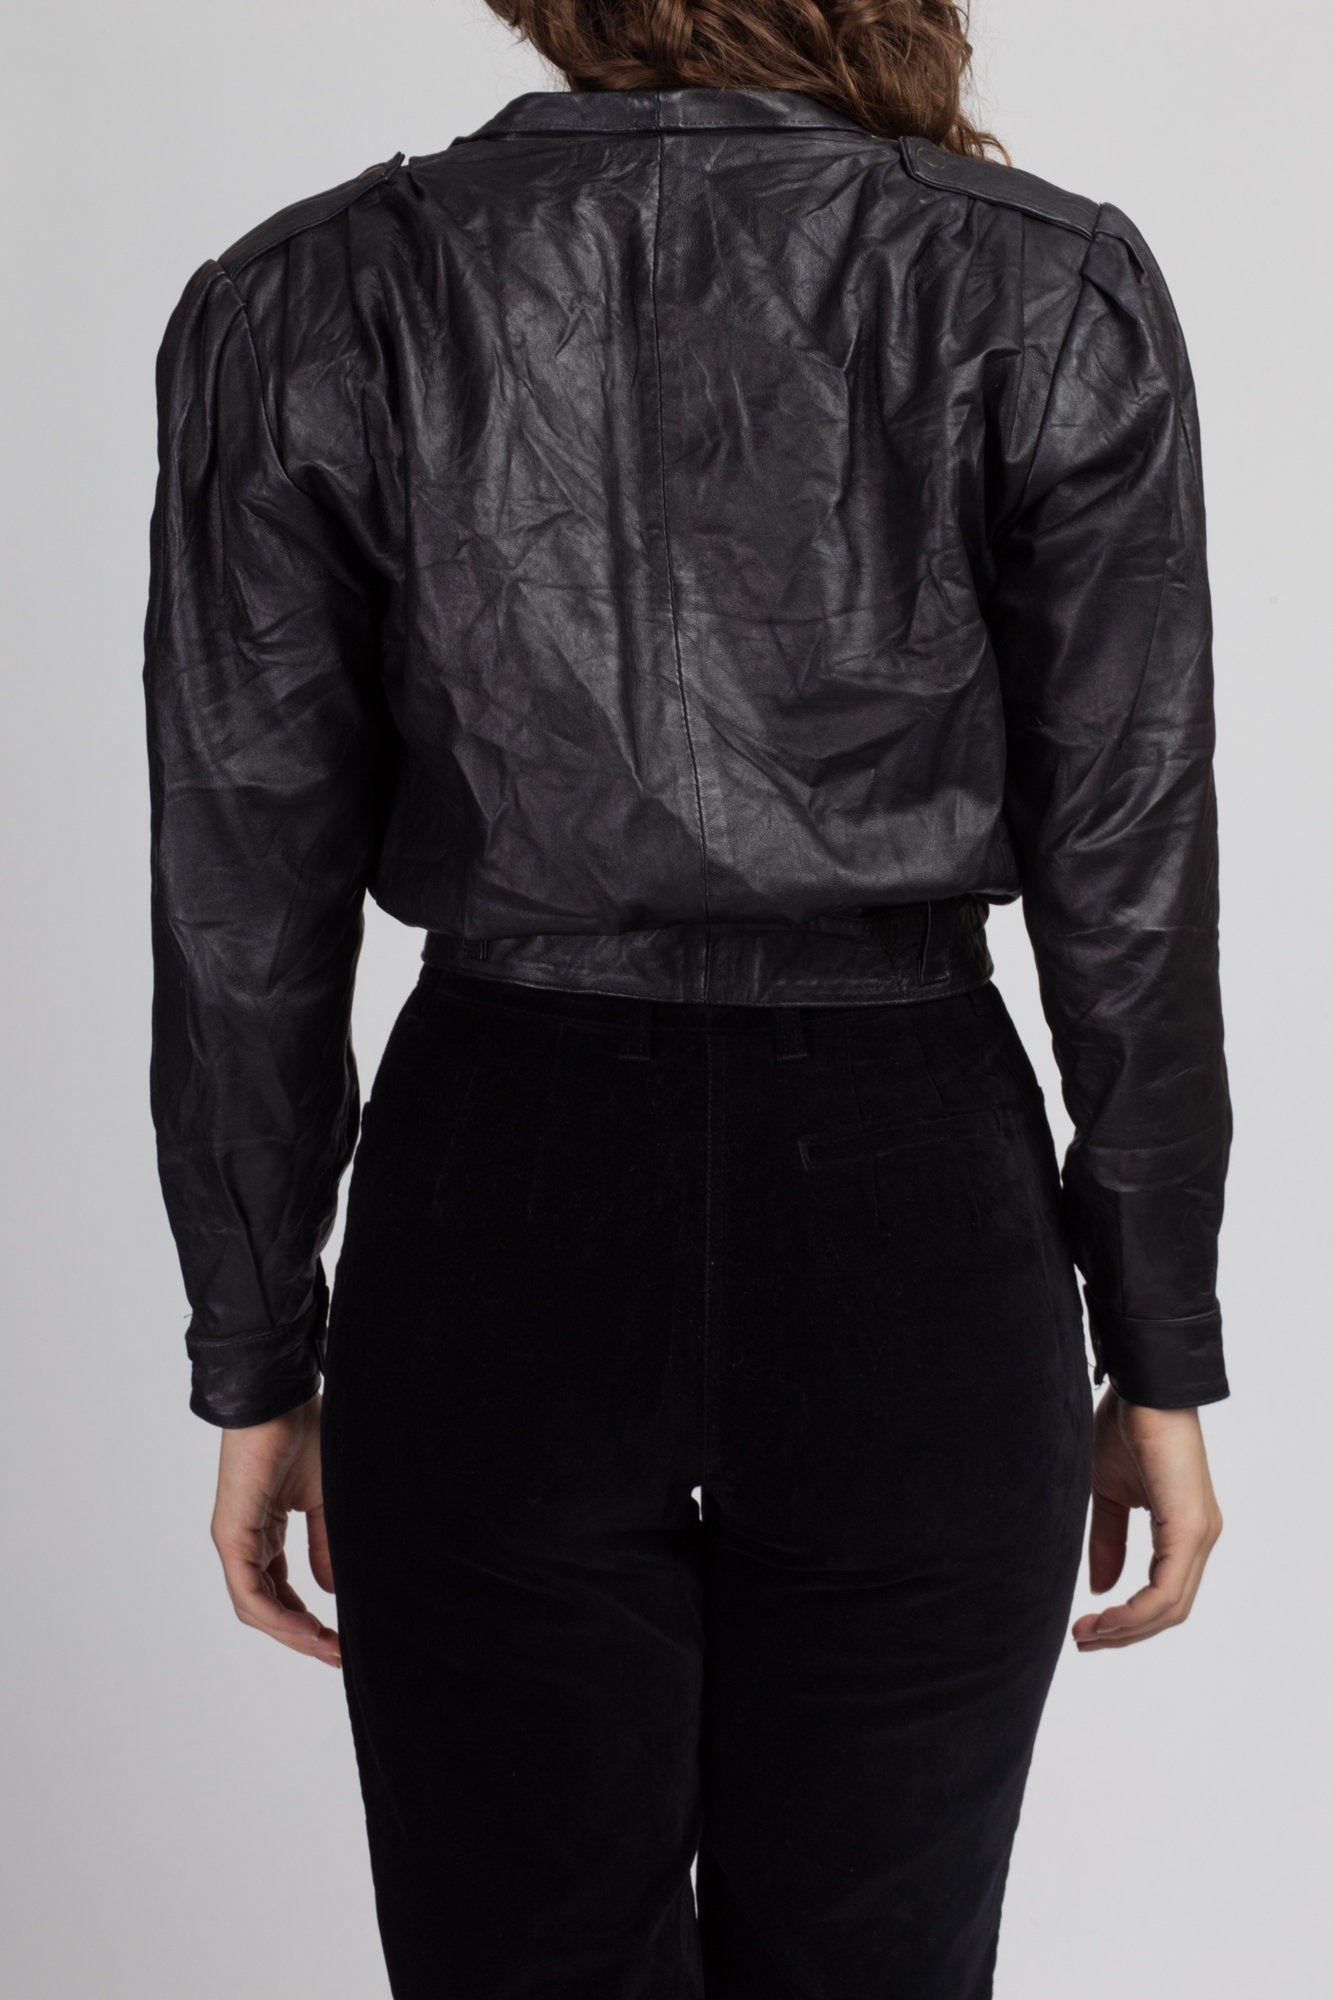 80s Cropped Black Leather Jacket - Small